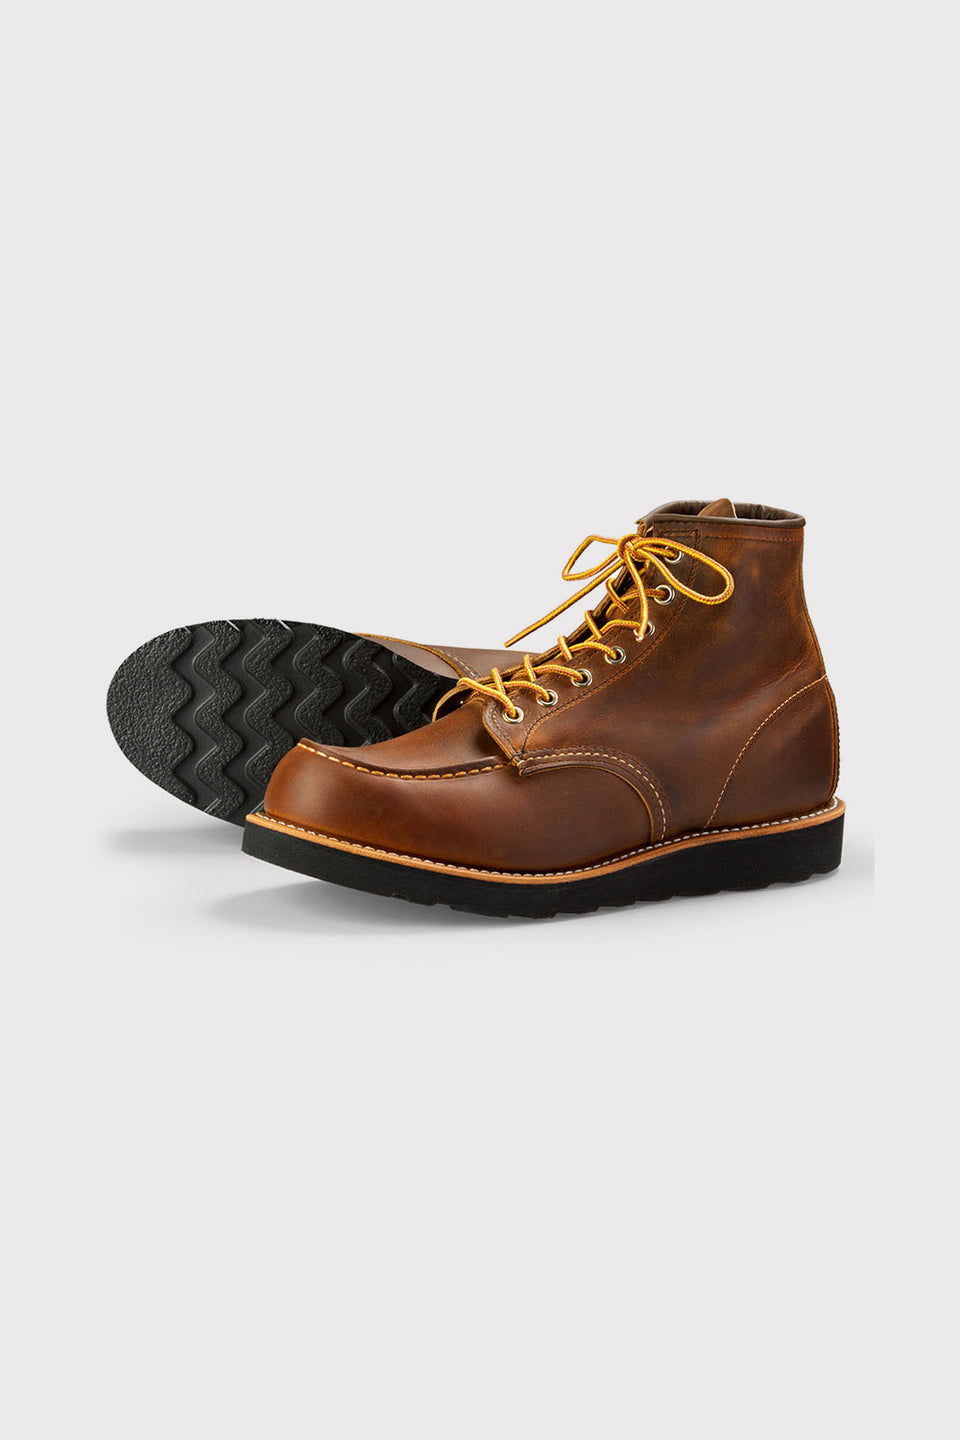 6-inch Moc Toe Copper Rough